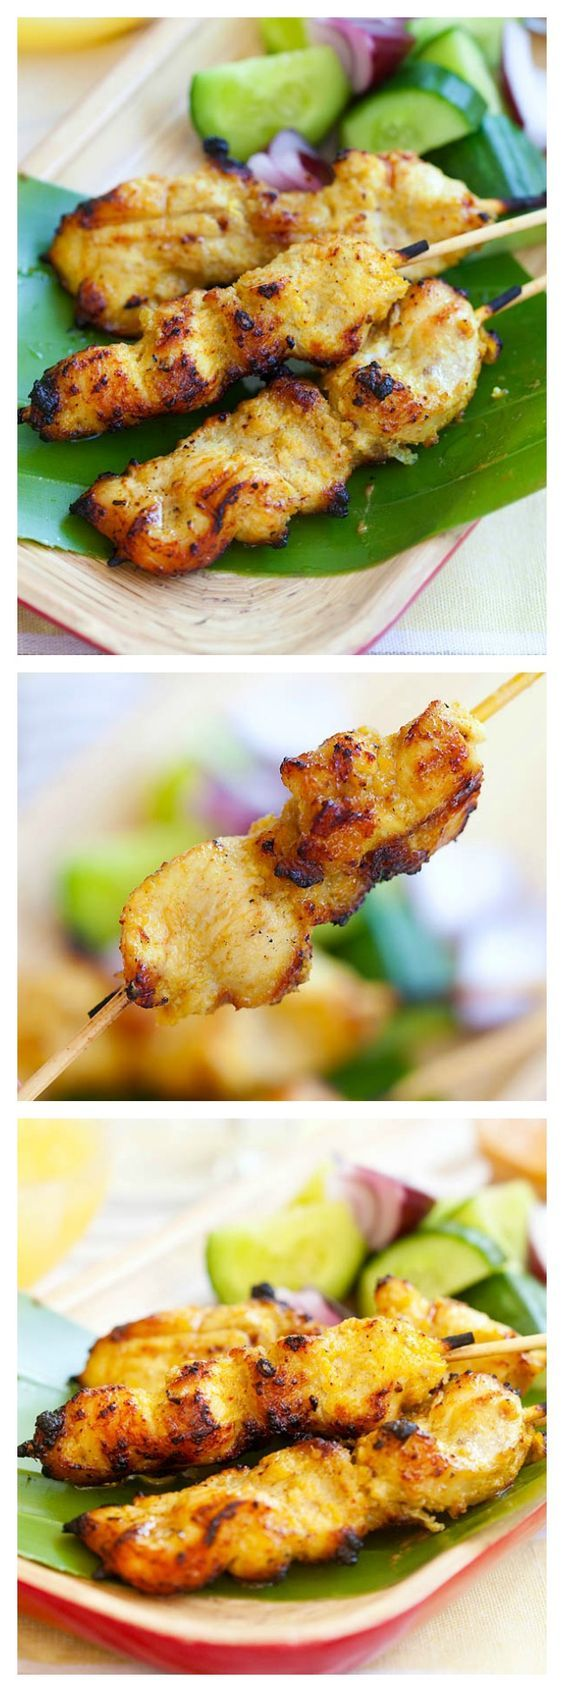 Chicken satay. The most amazing Chicken satay recipe with skewered marinated chicken and grilled ro perfection. Enjoy the end of summer grill with these chicken satay | rasamalaysia.com